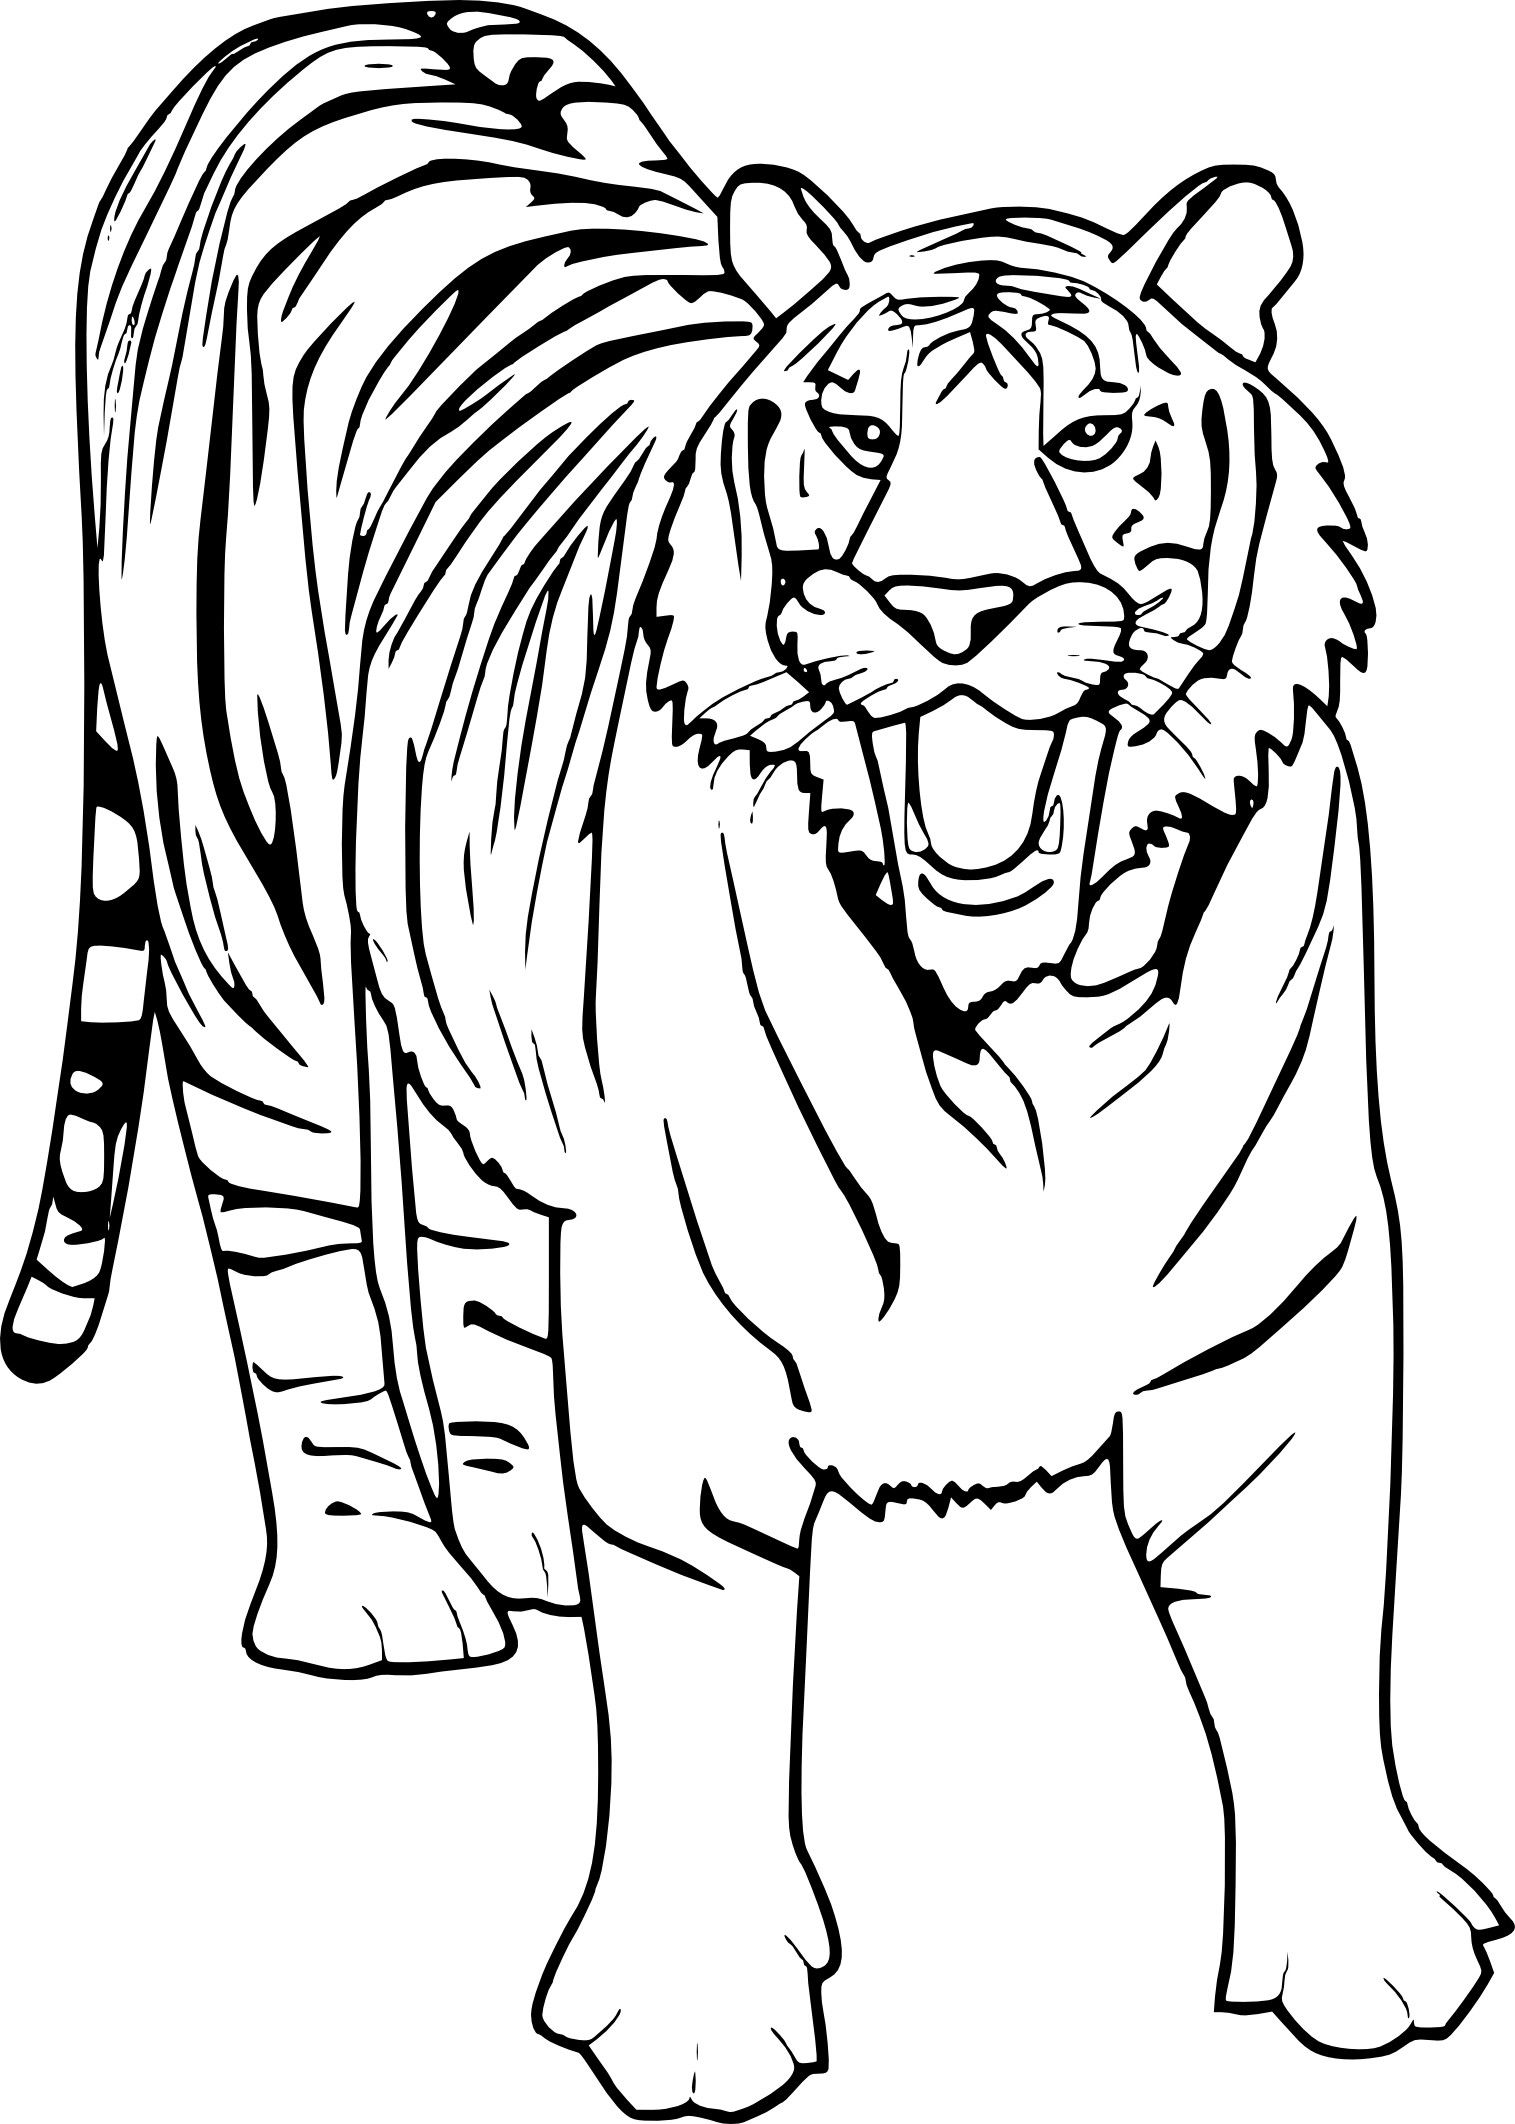 Tiger Coloring And Drawing Print Zoo Animal Coloring Pages Tiger Drawing For Kids Animal Coloring Pages